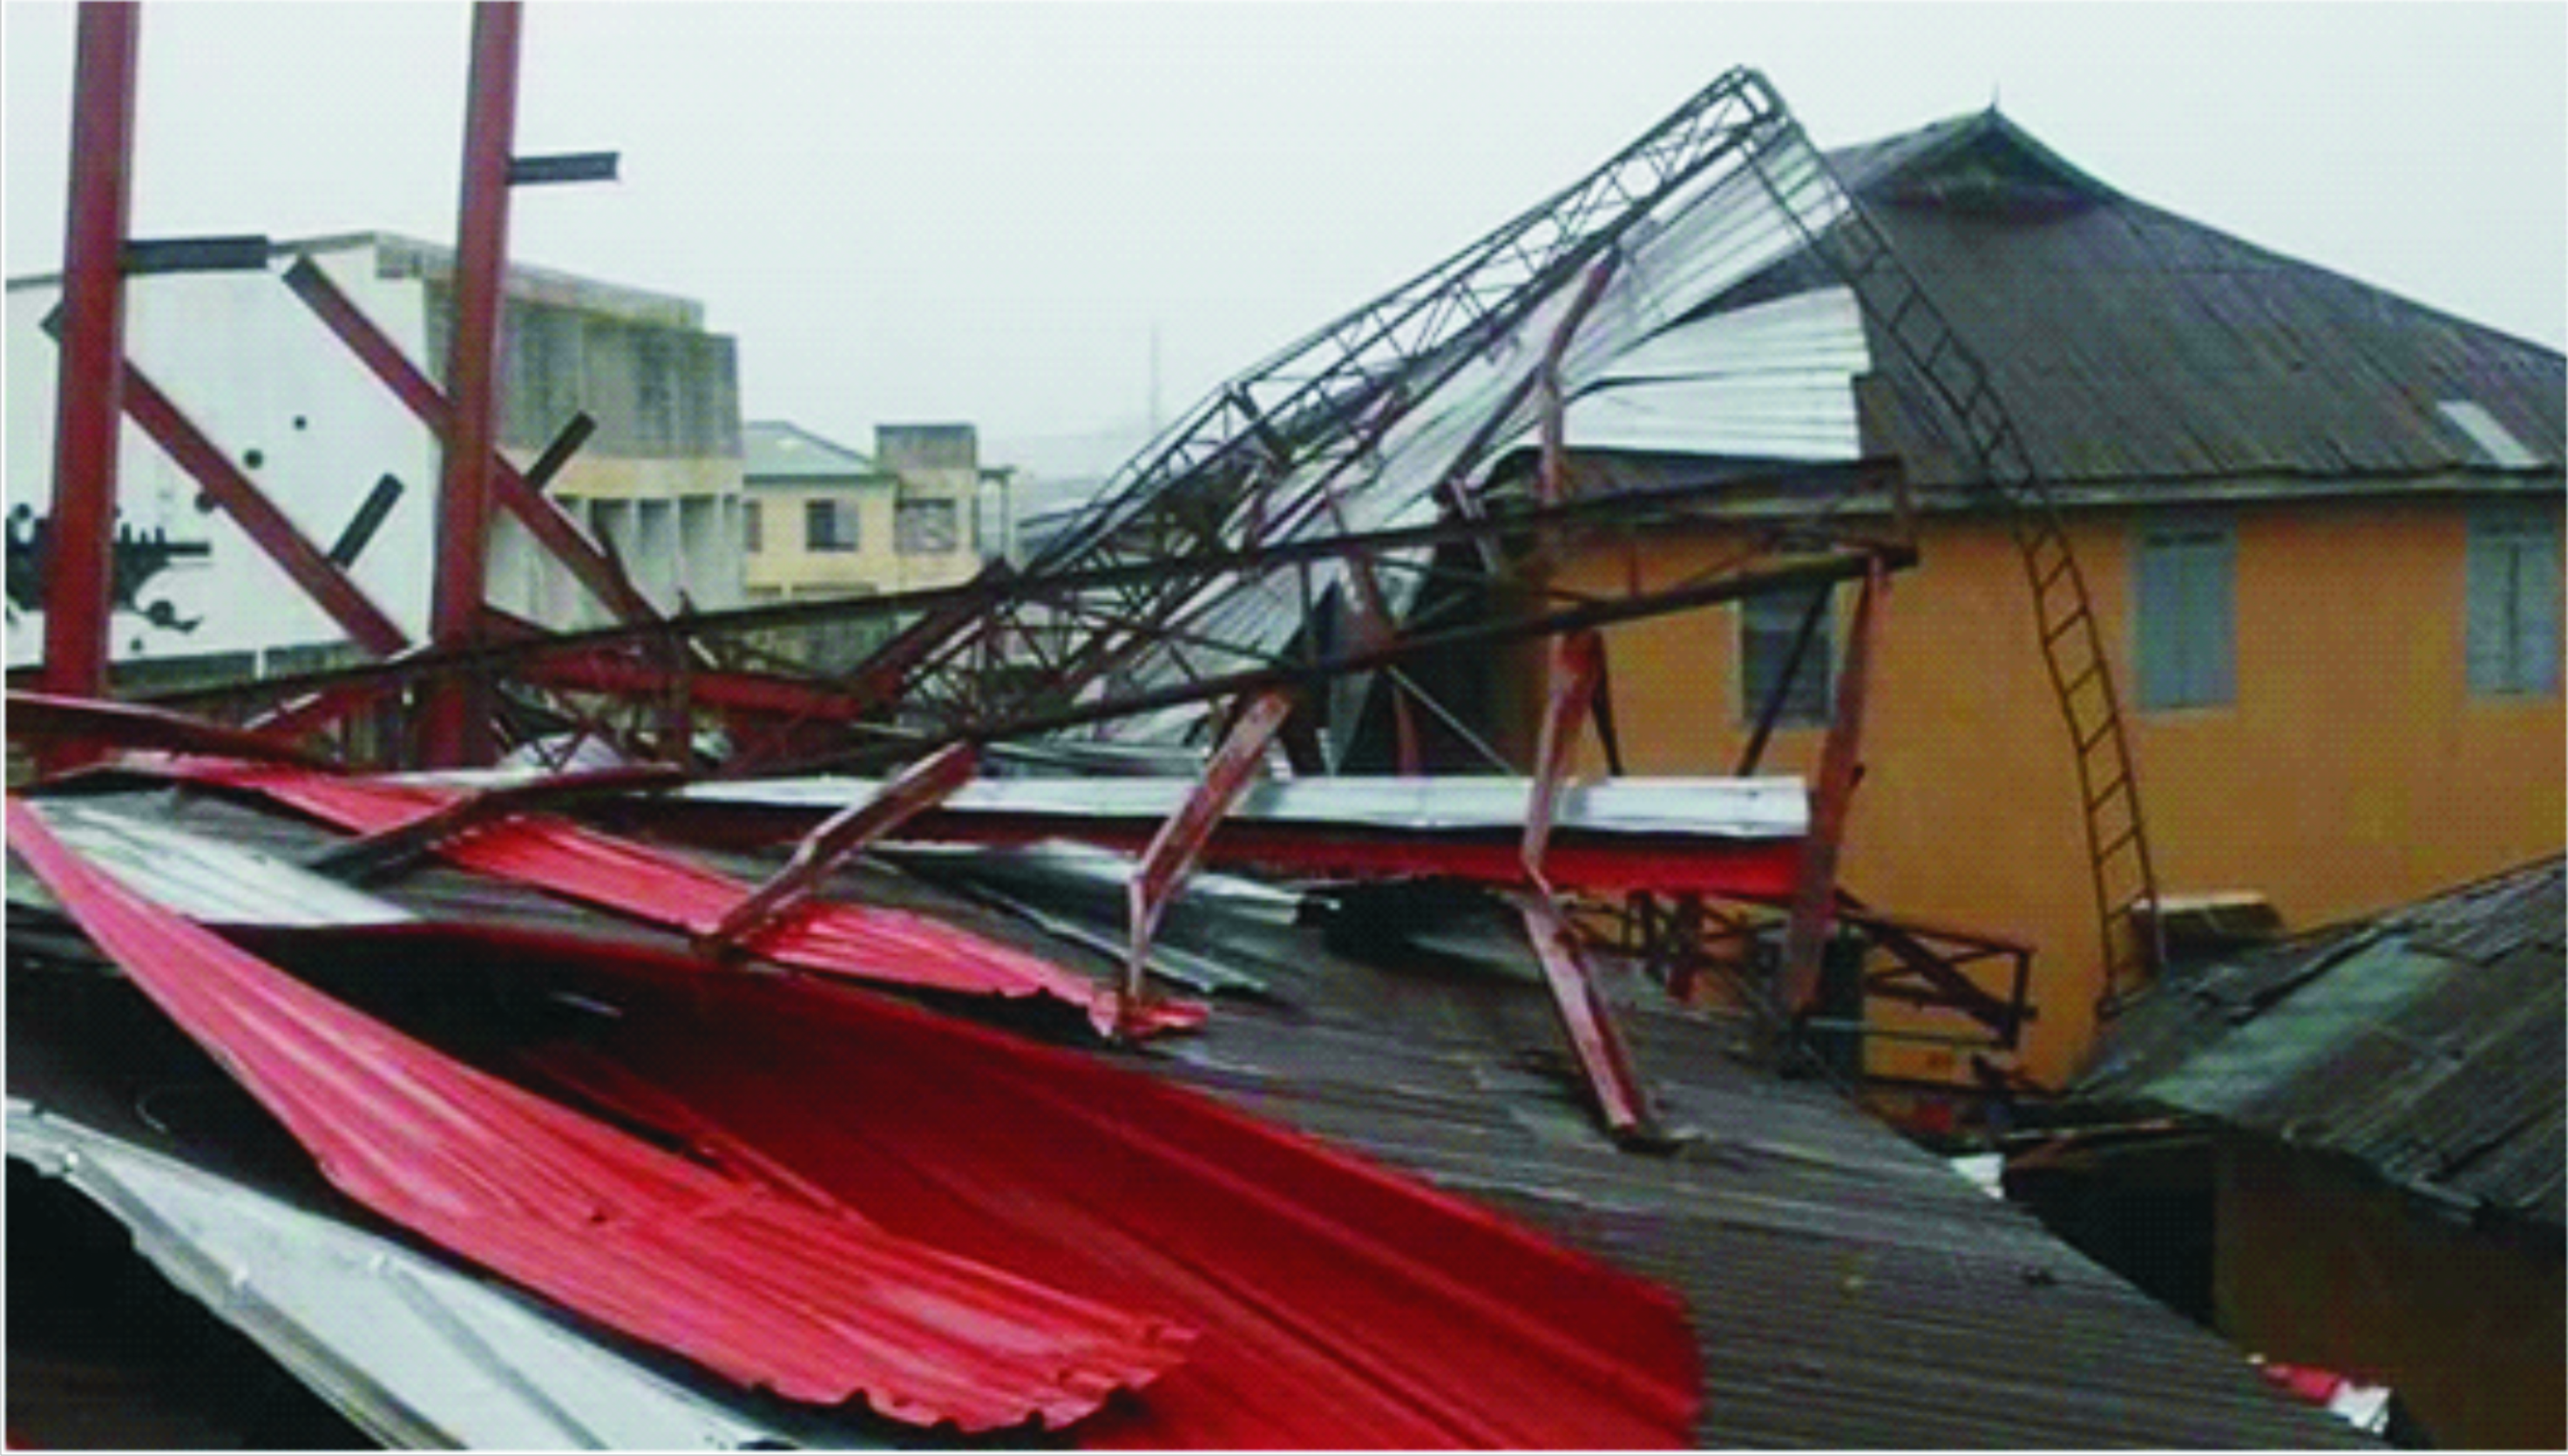 Heavy rains affect houses, electricity poles in Ondo